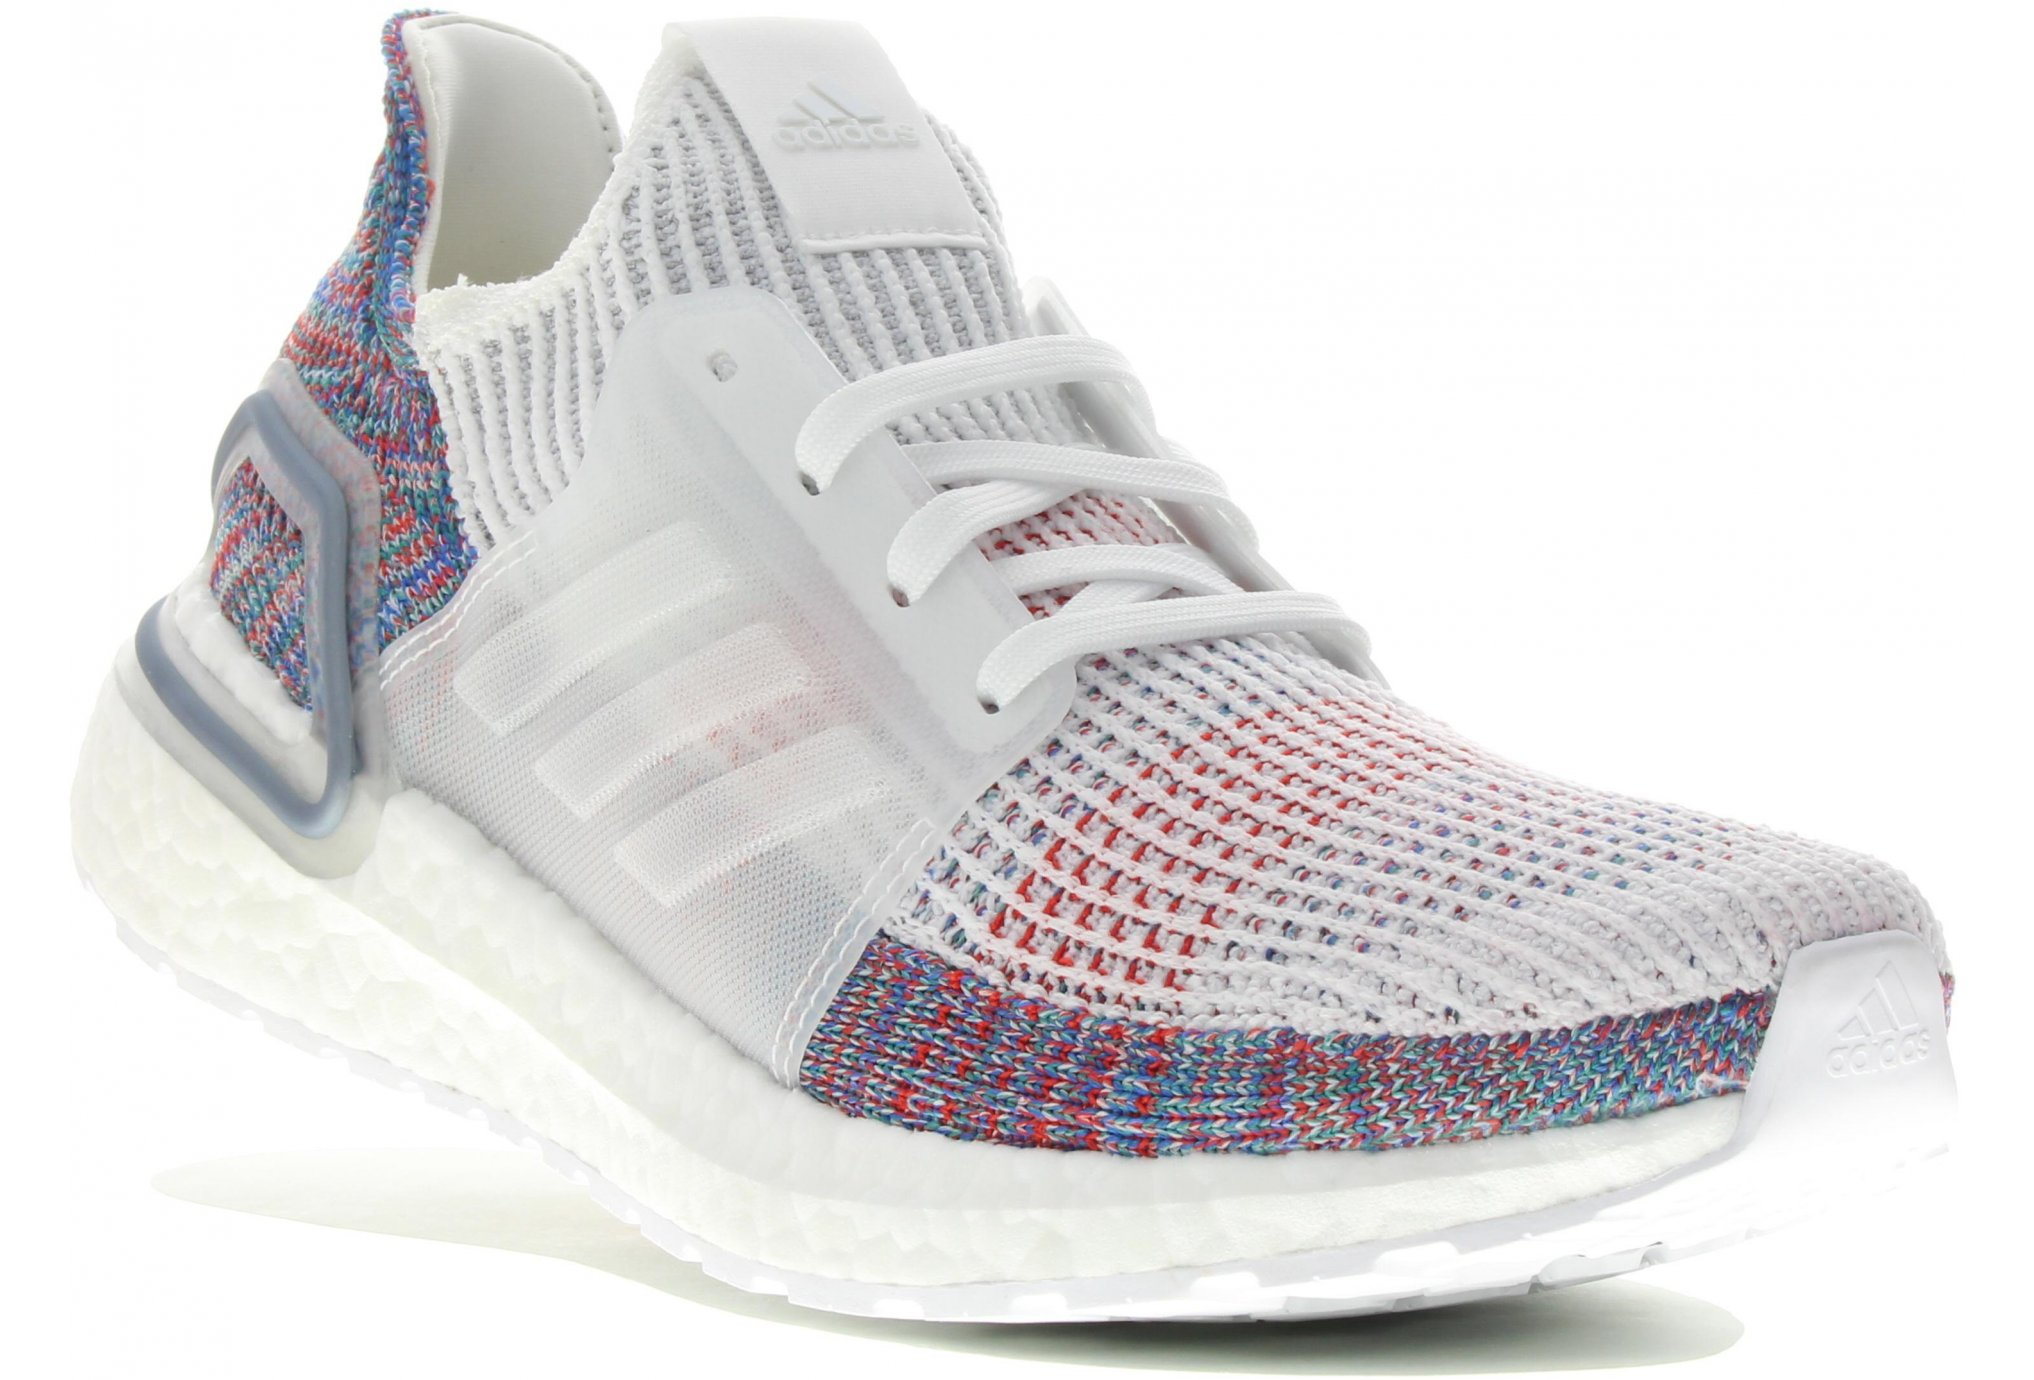 adidas UltraBOOST 19 Refract Chaussures homme